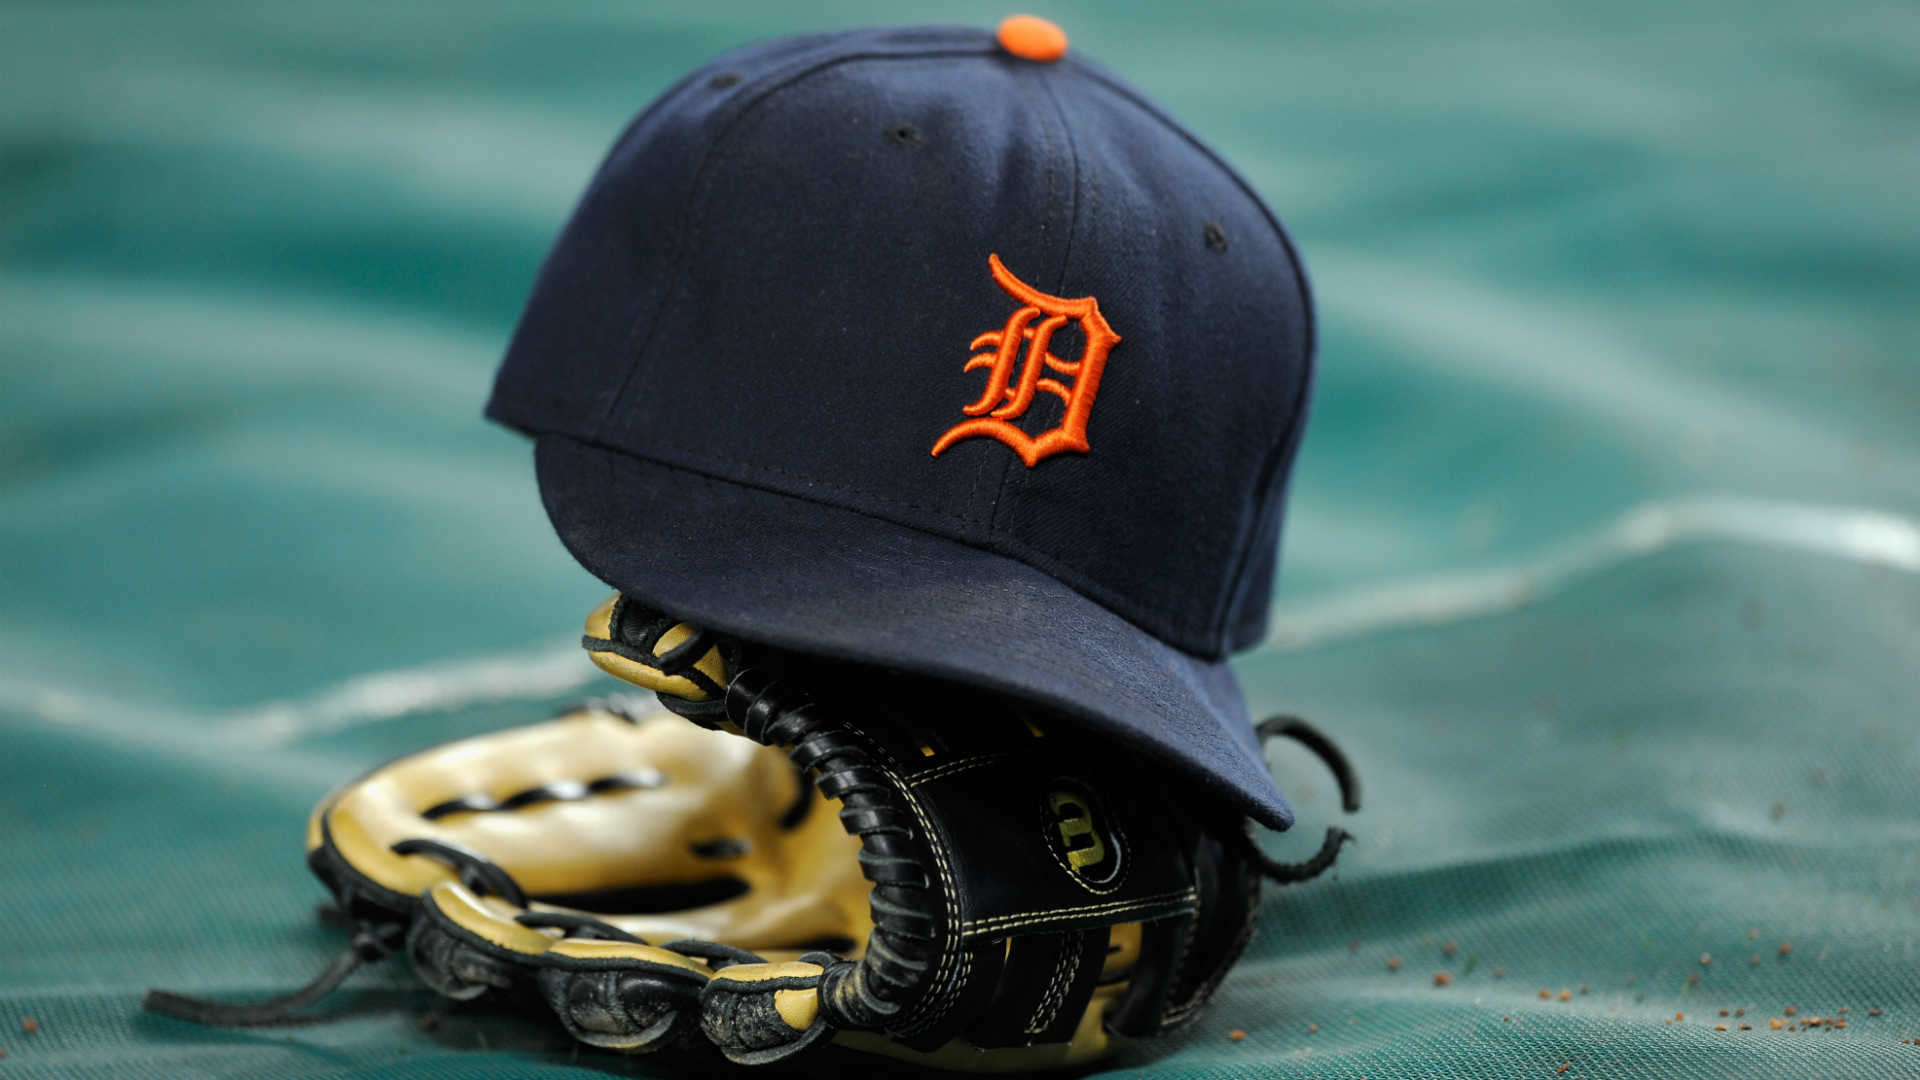 MLB Draft 2018: Tigers take pitcher Casey Mize No. 1 overall